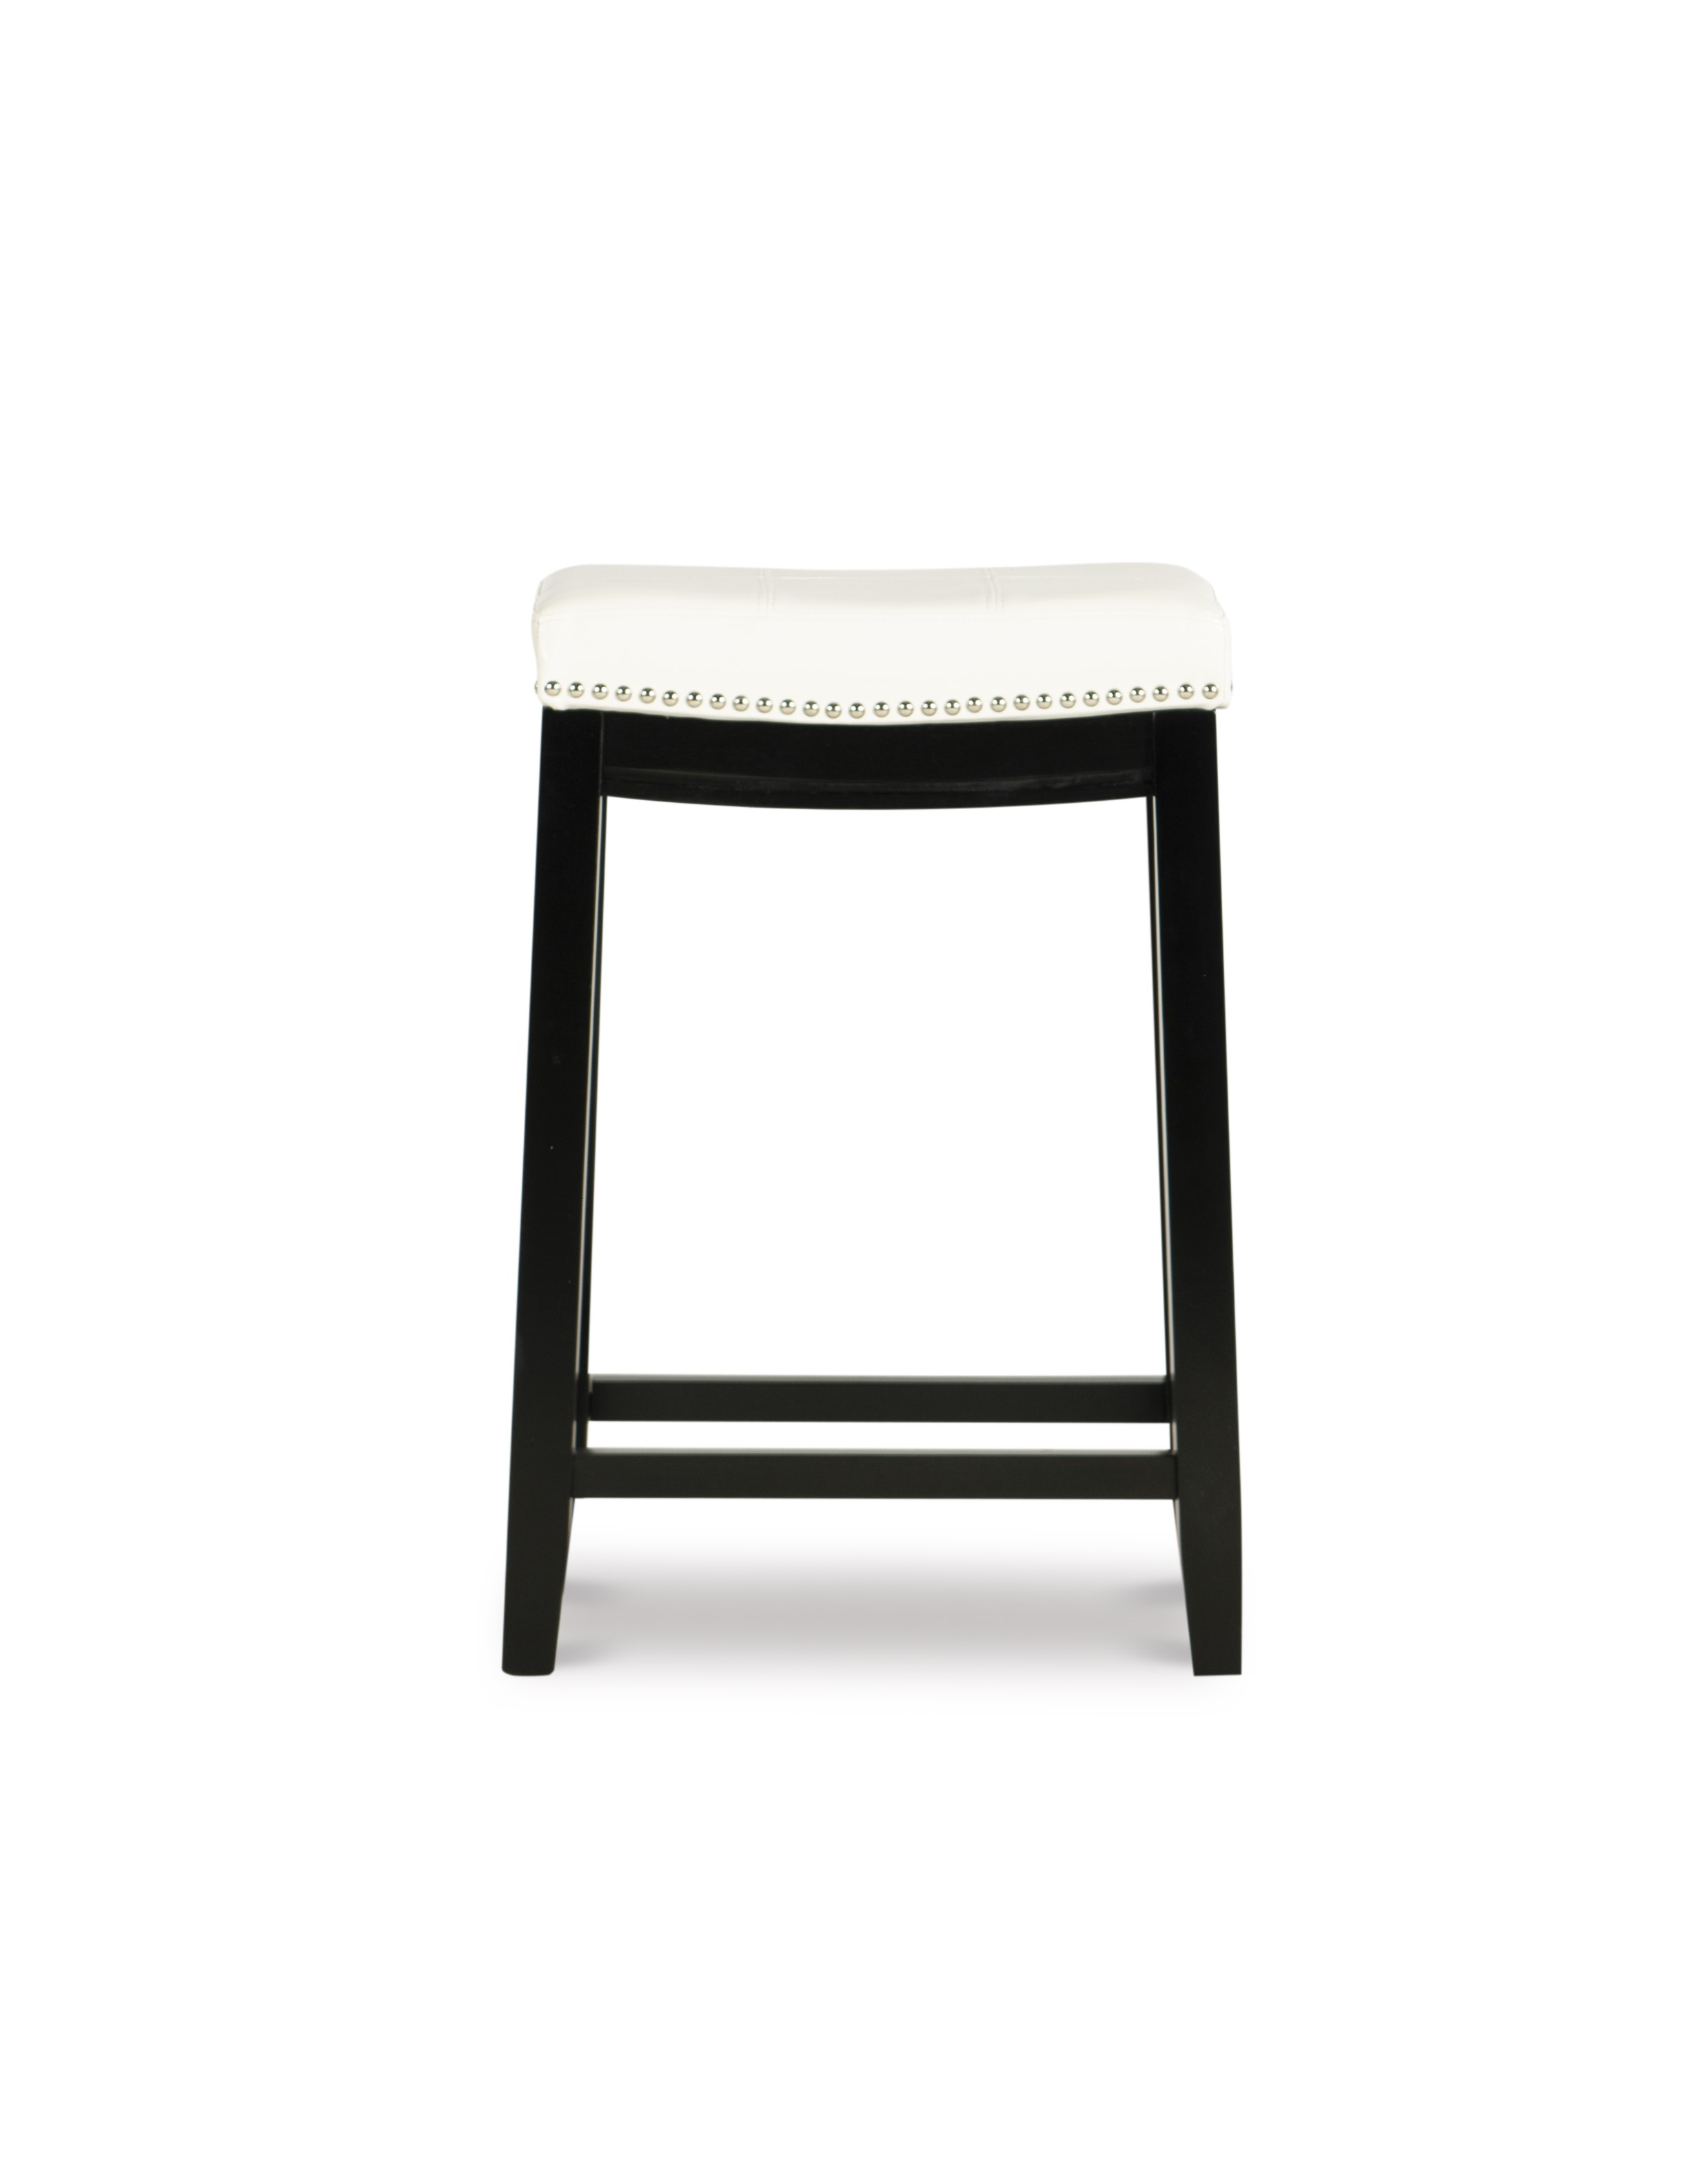 Marvelous Linon Claridge Backless Counter Stool 24 Inch Seat Height Ocoug Best Dining Table And Chair Ideas Images Ocougorg